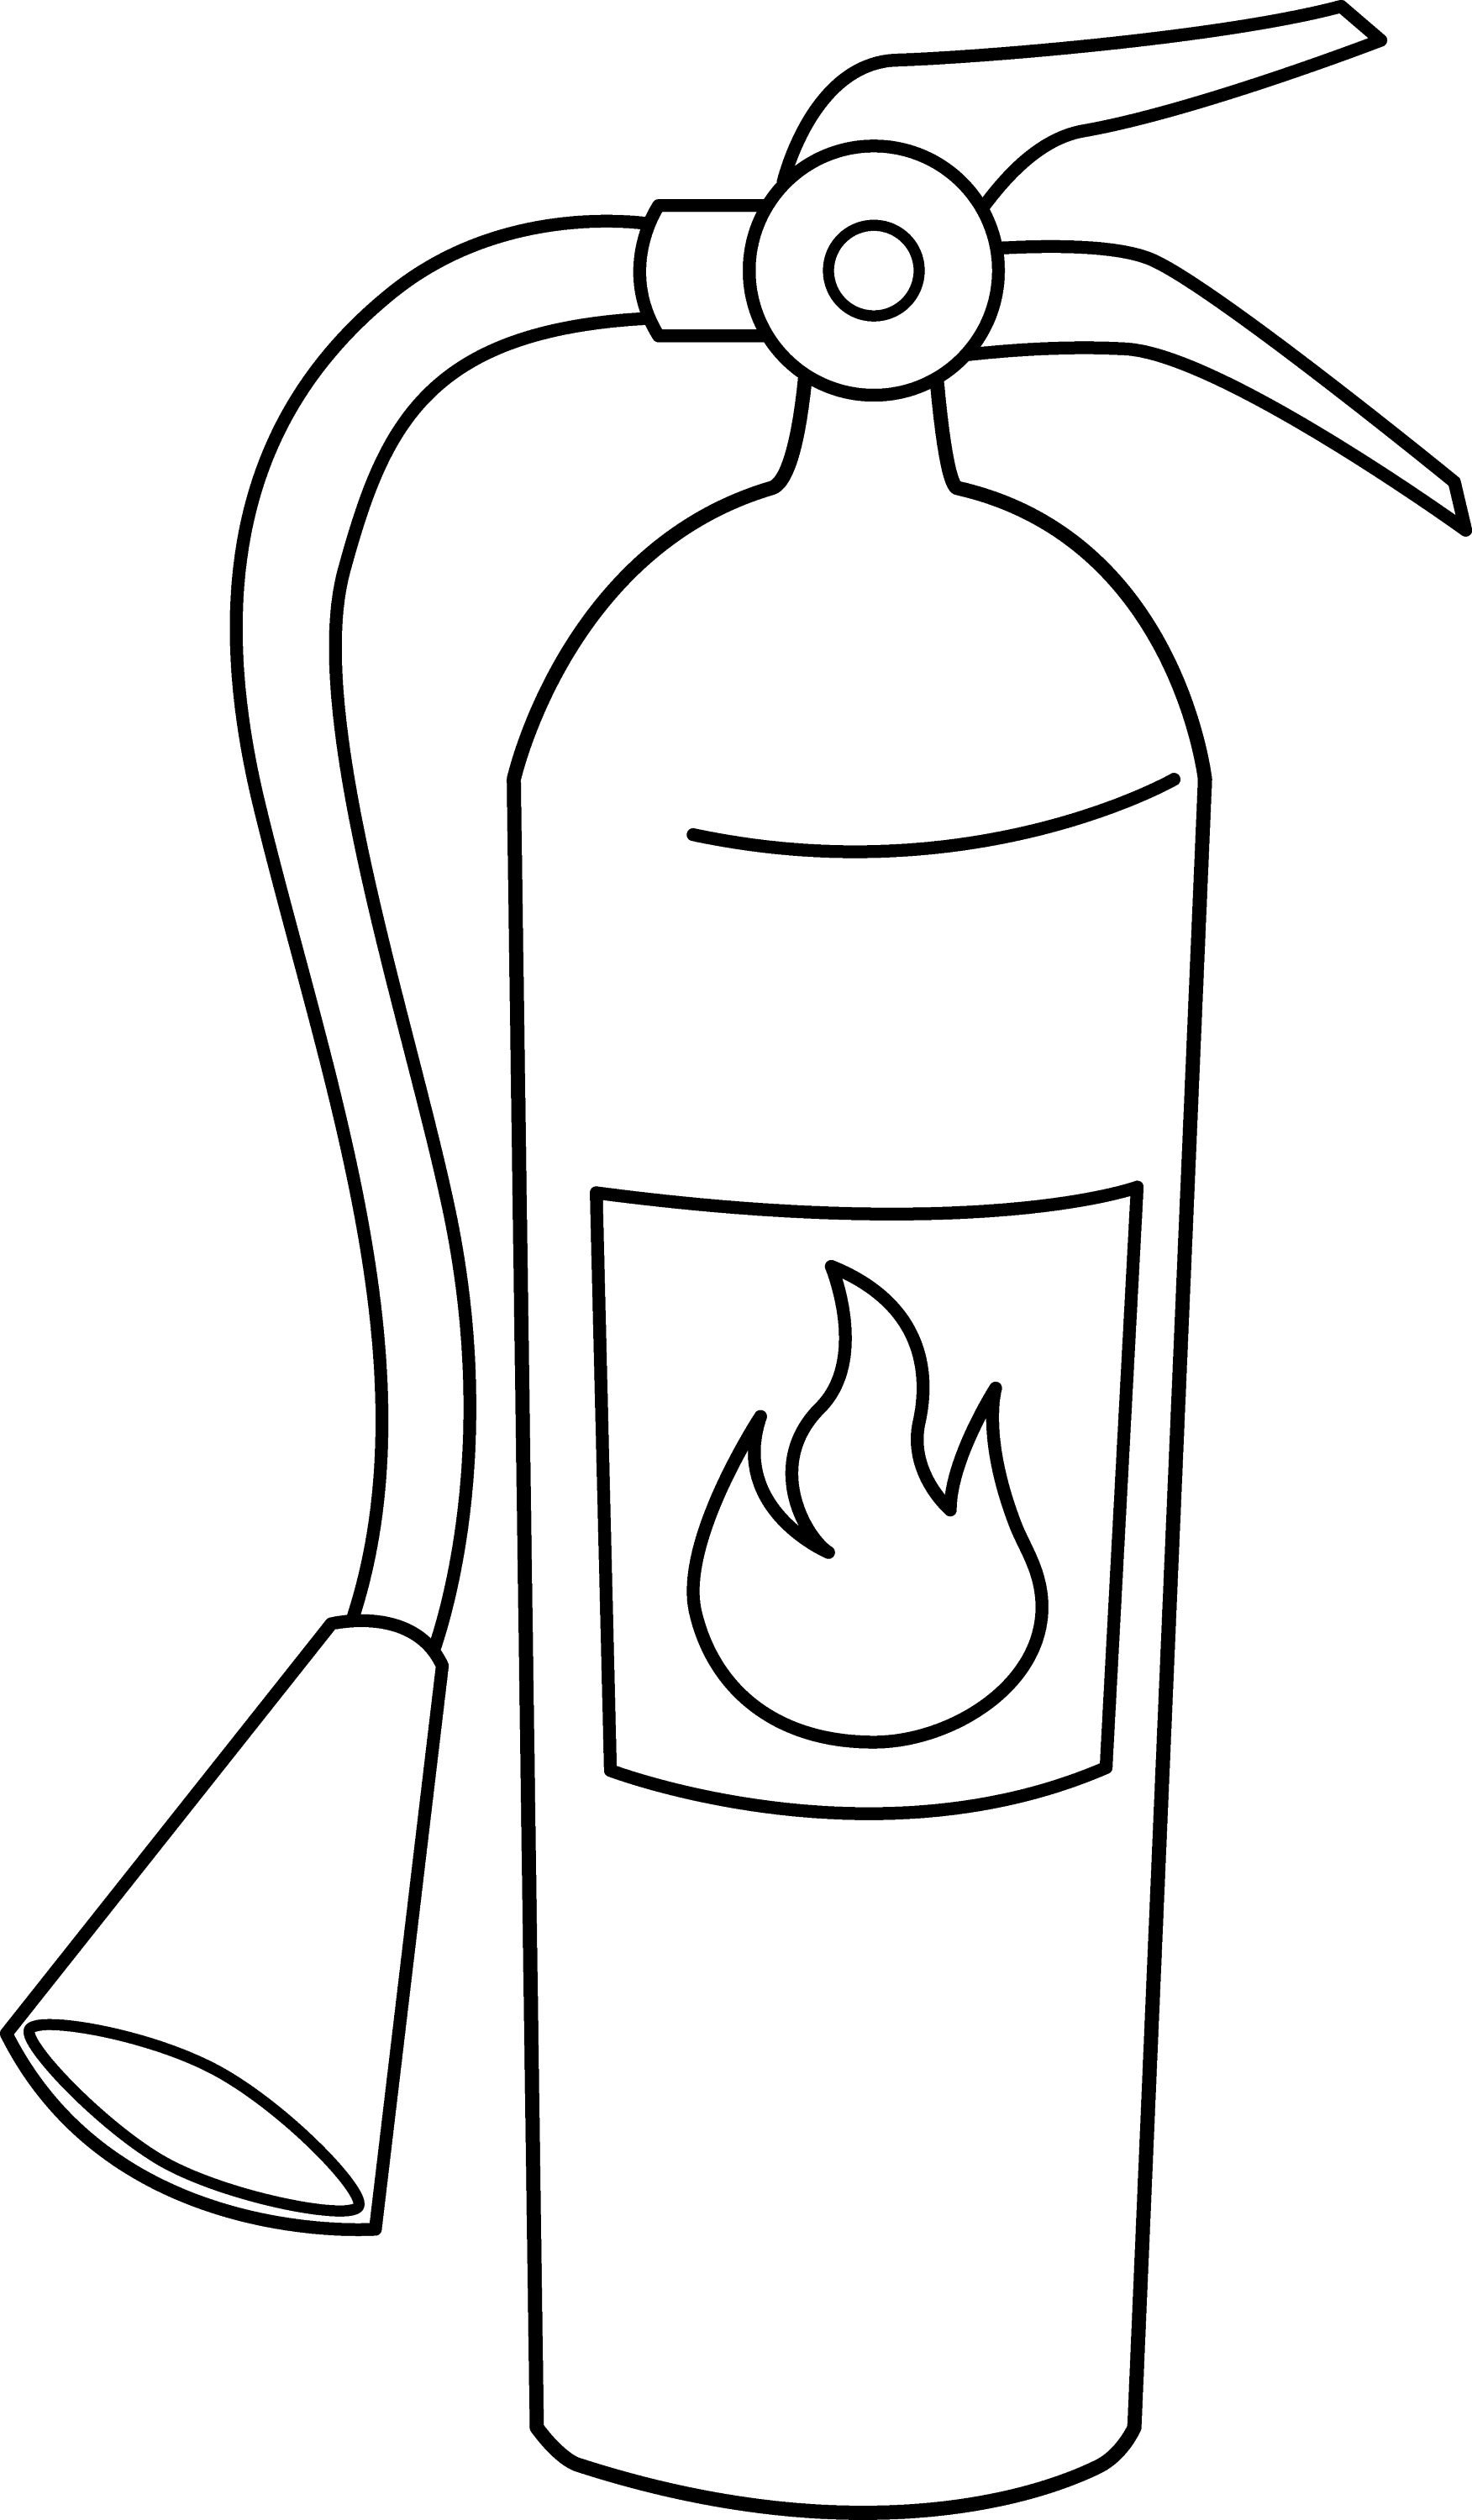 fire extinguisher coloring page fire extinguisher coloring pages coloring pages to page fire coloring extinguisher